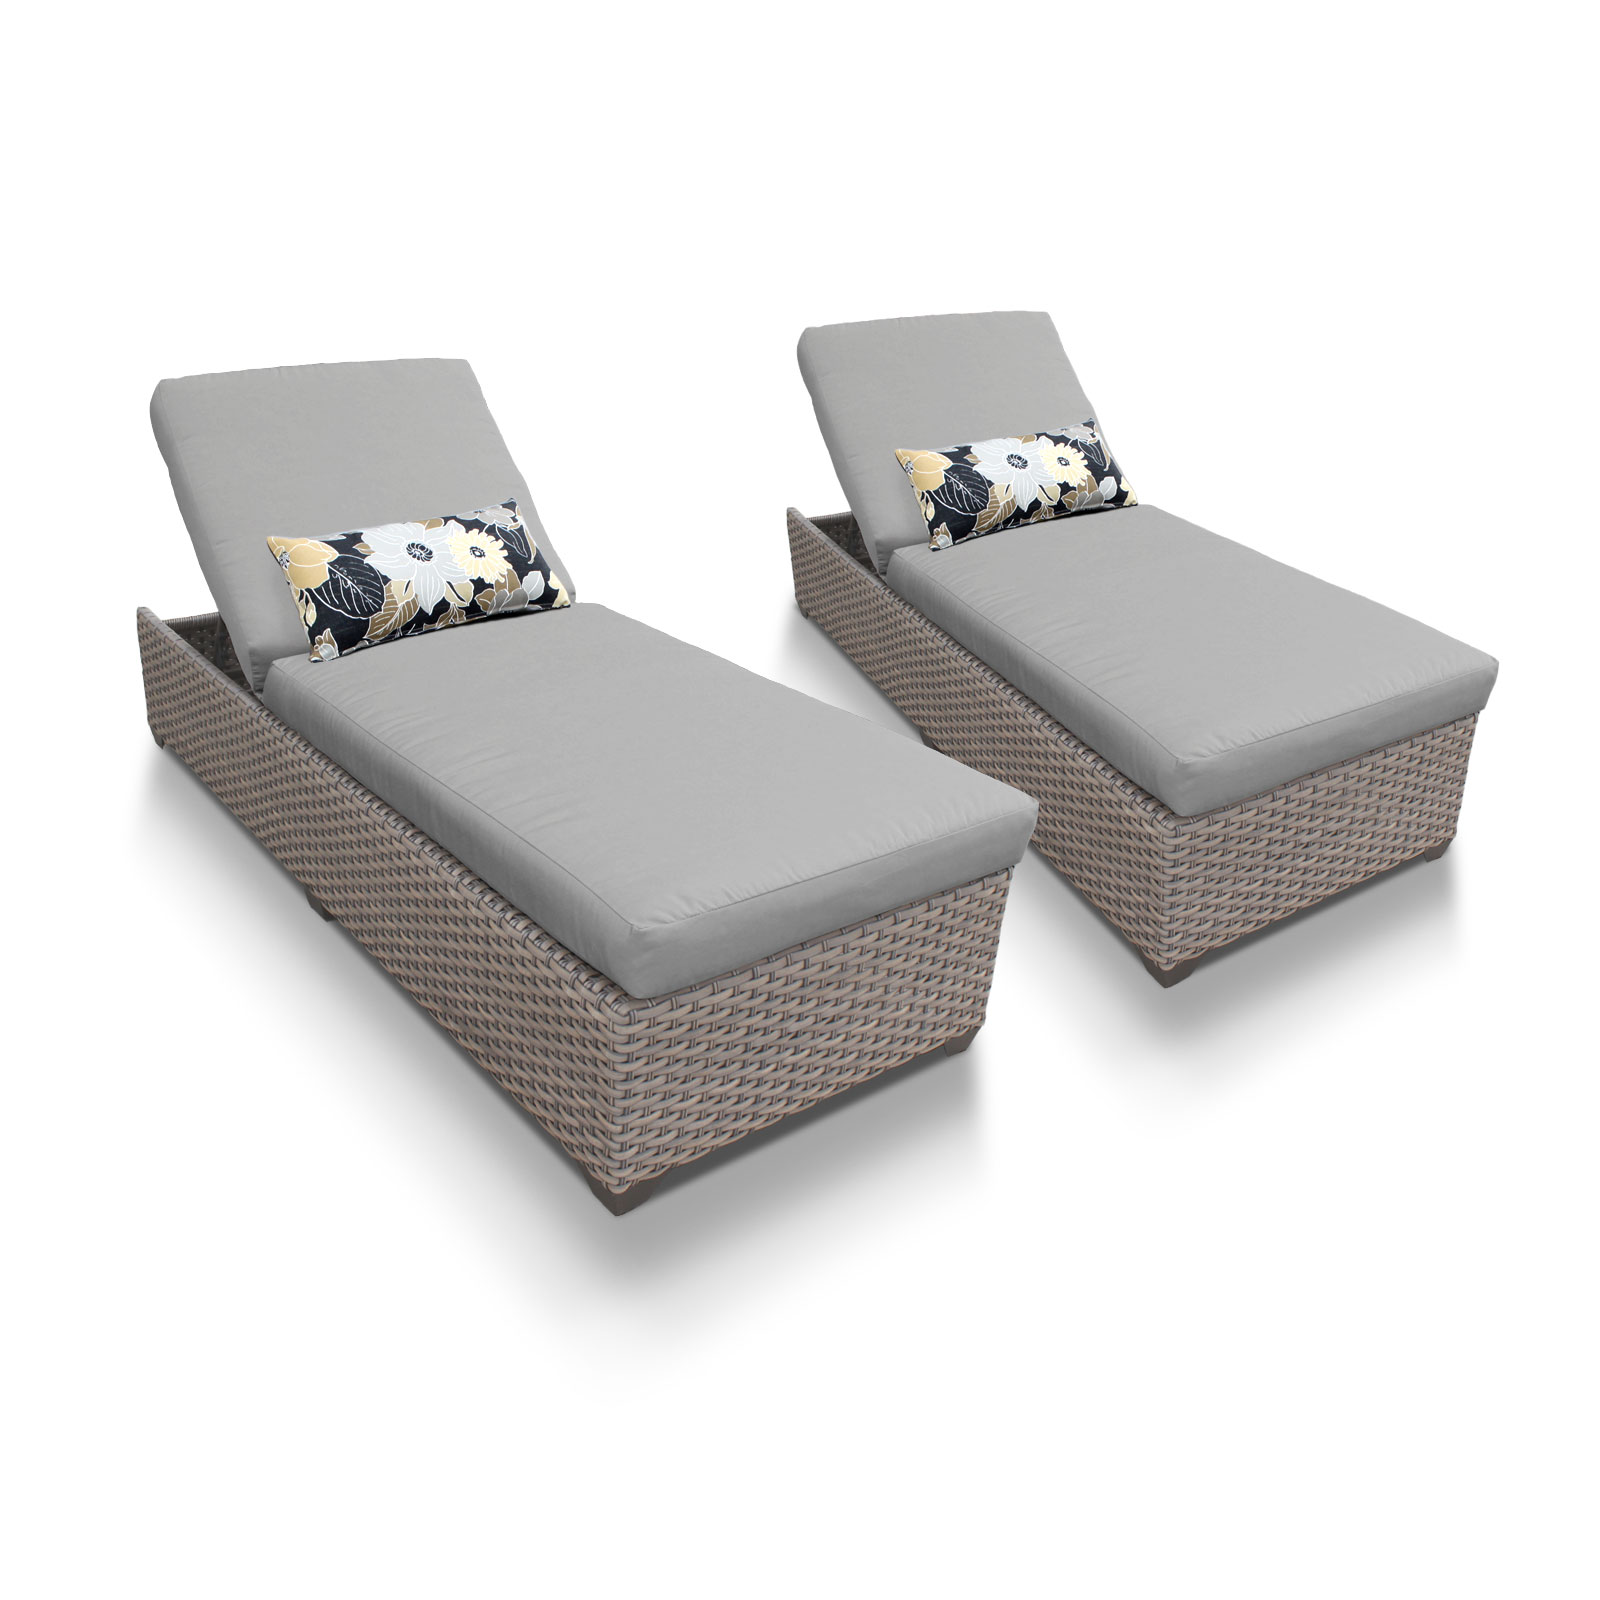 TK Classics Oasis Chaise Set of 2 Outdoor Wicker Patio Fu...